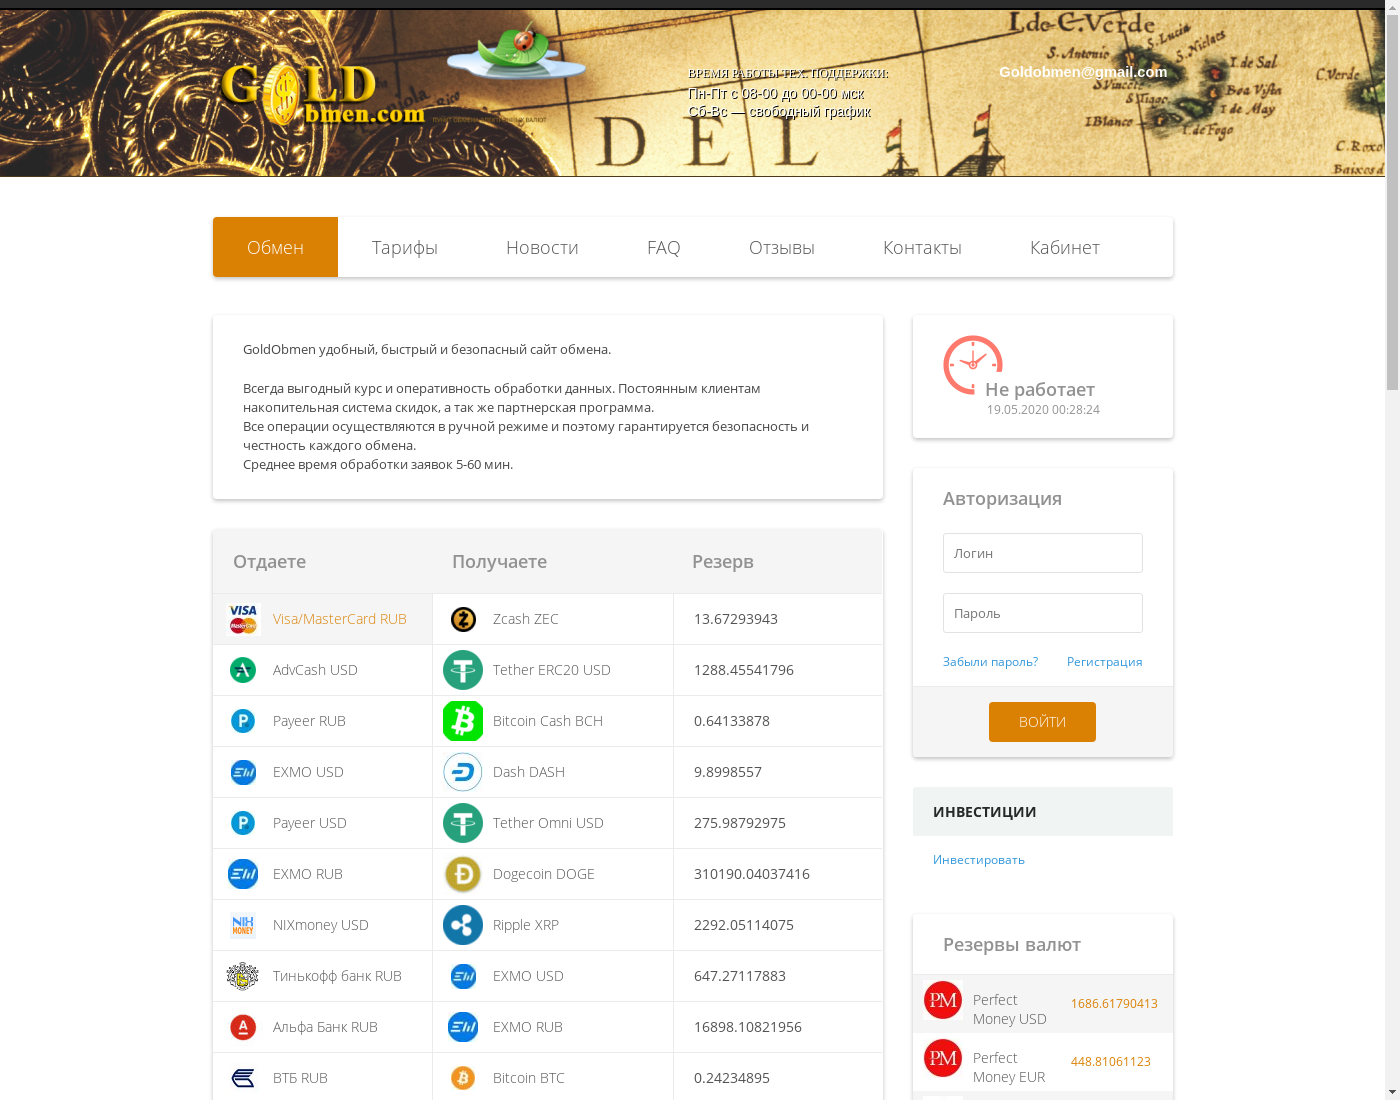 goldobmen user interface: the home page in English